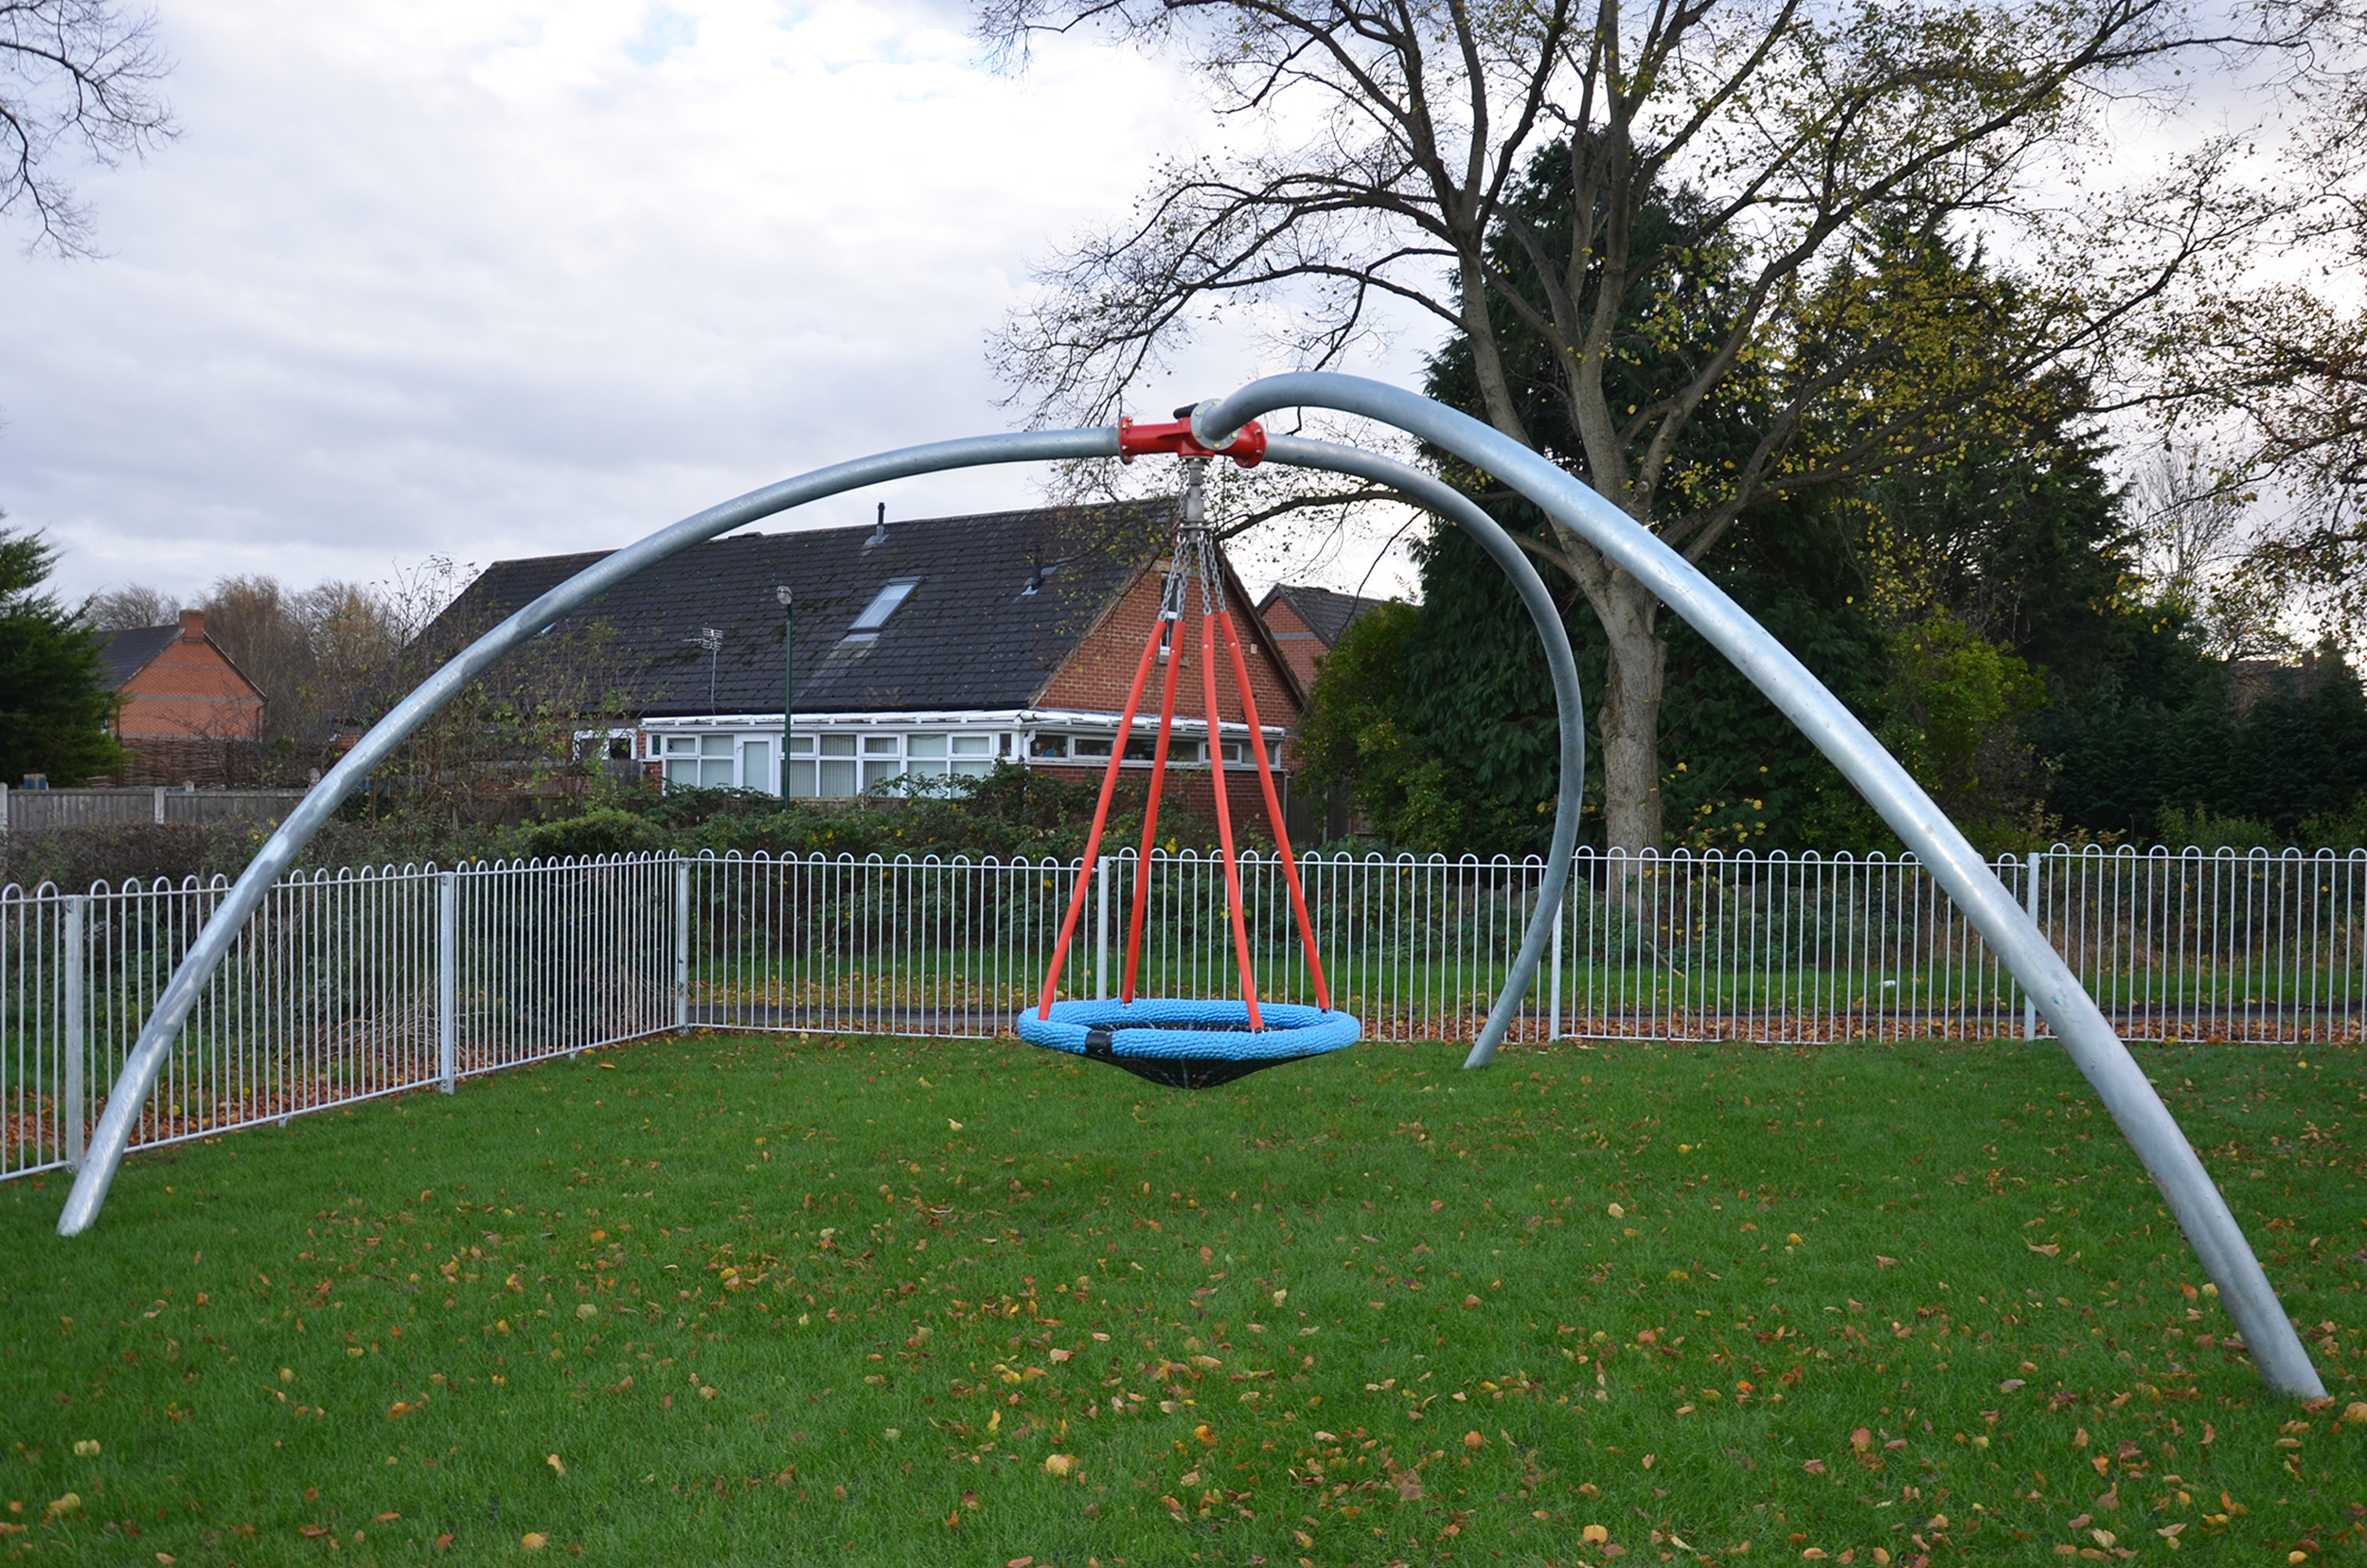 the inclusive single point swing has a blue basket seat hanging on chain from a central red pivot held by three curved silver legs, it is sat above grass with a surrounding silver fence with a house and trees in the background